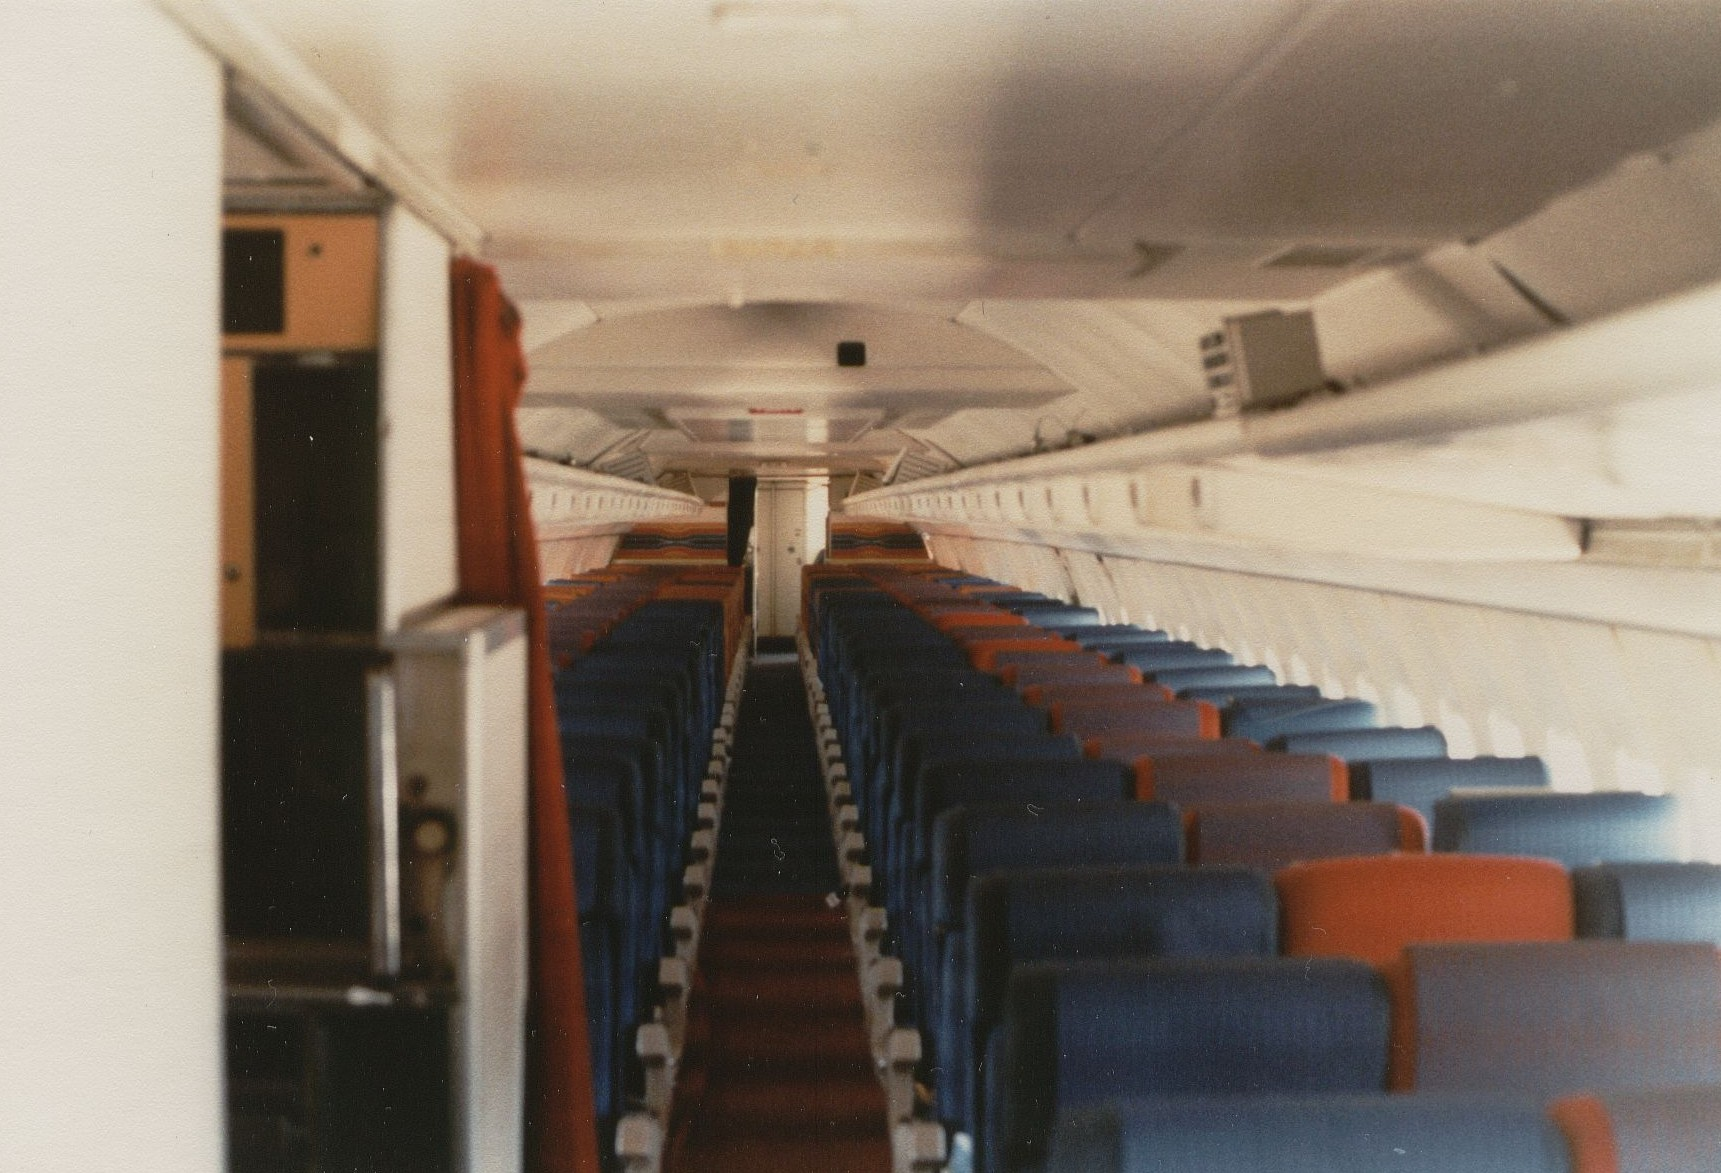 August 1981 A Pan Am Boeing 707 in an all economy charter service configuration with 180 seats.  This photograph was taken from the forward boarding door just by the cockpit and shows the whole cabin all the way to the rear lavatories.